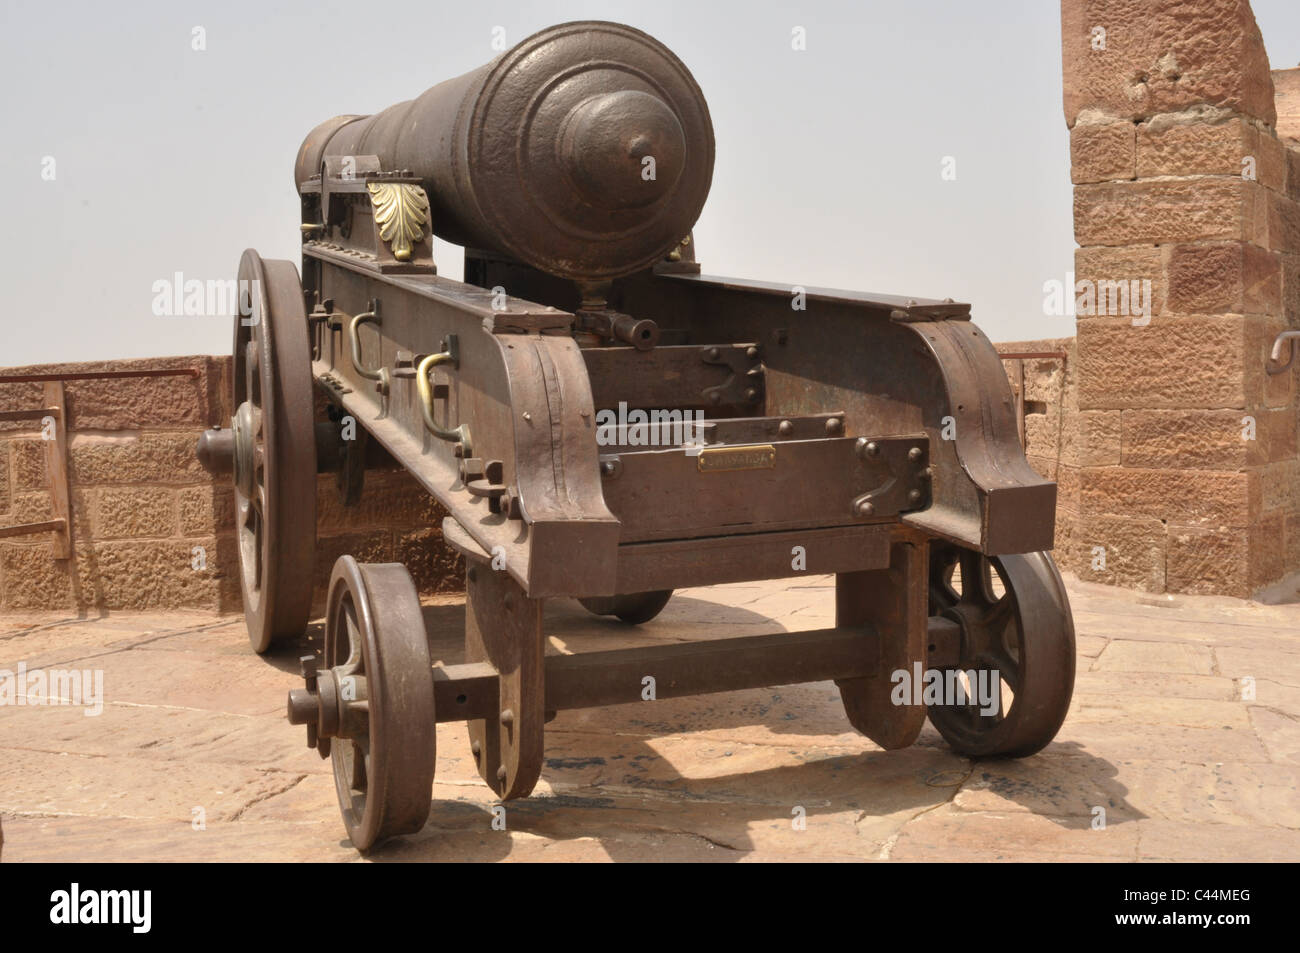 Royal Cannon put for display on the roof of Fort in Jodhpur. - Stock Image